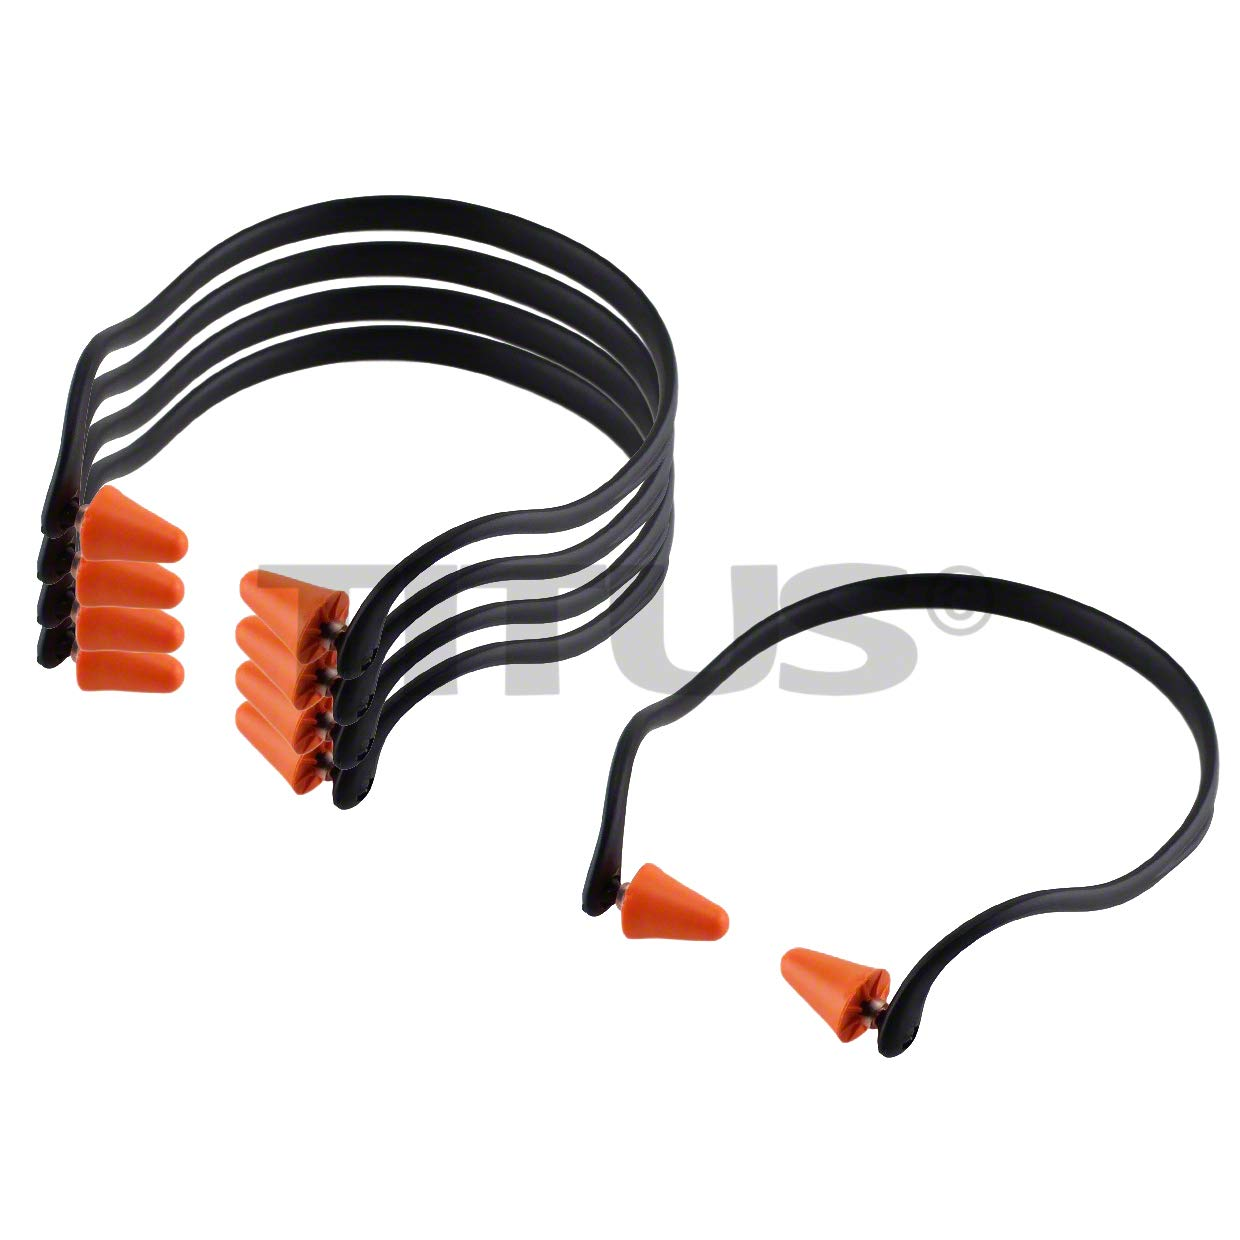 Titus U-Band - Over Ear Reuseable Banded Ear Plugs (25 Decibel, 5 Bands) by Titus